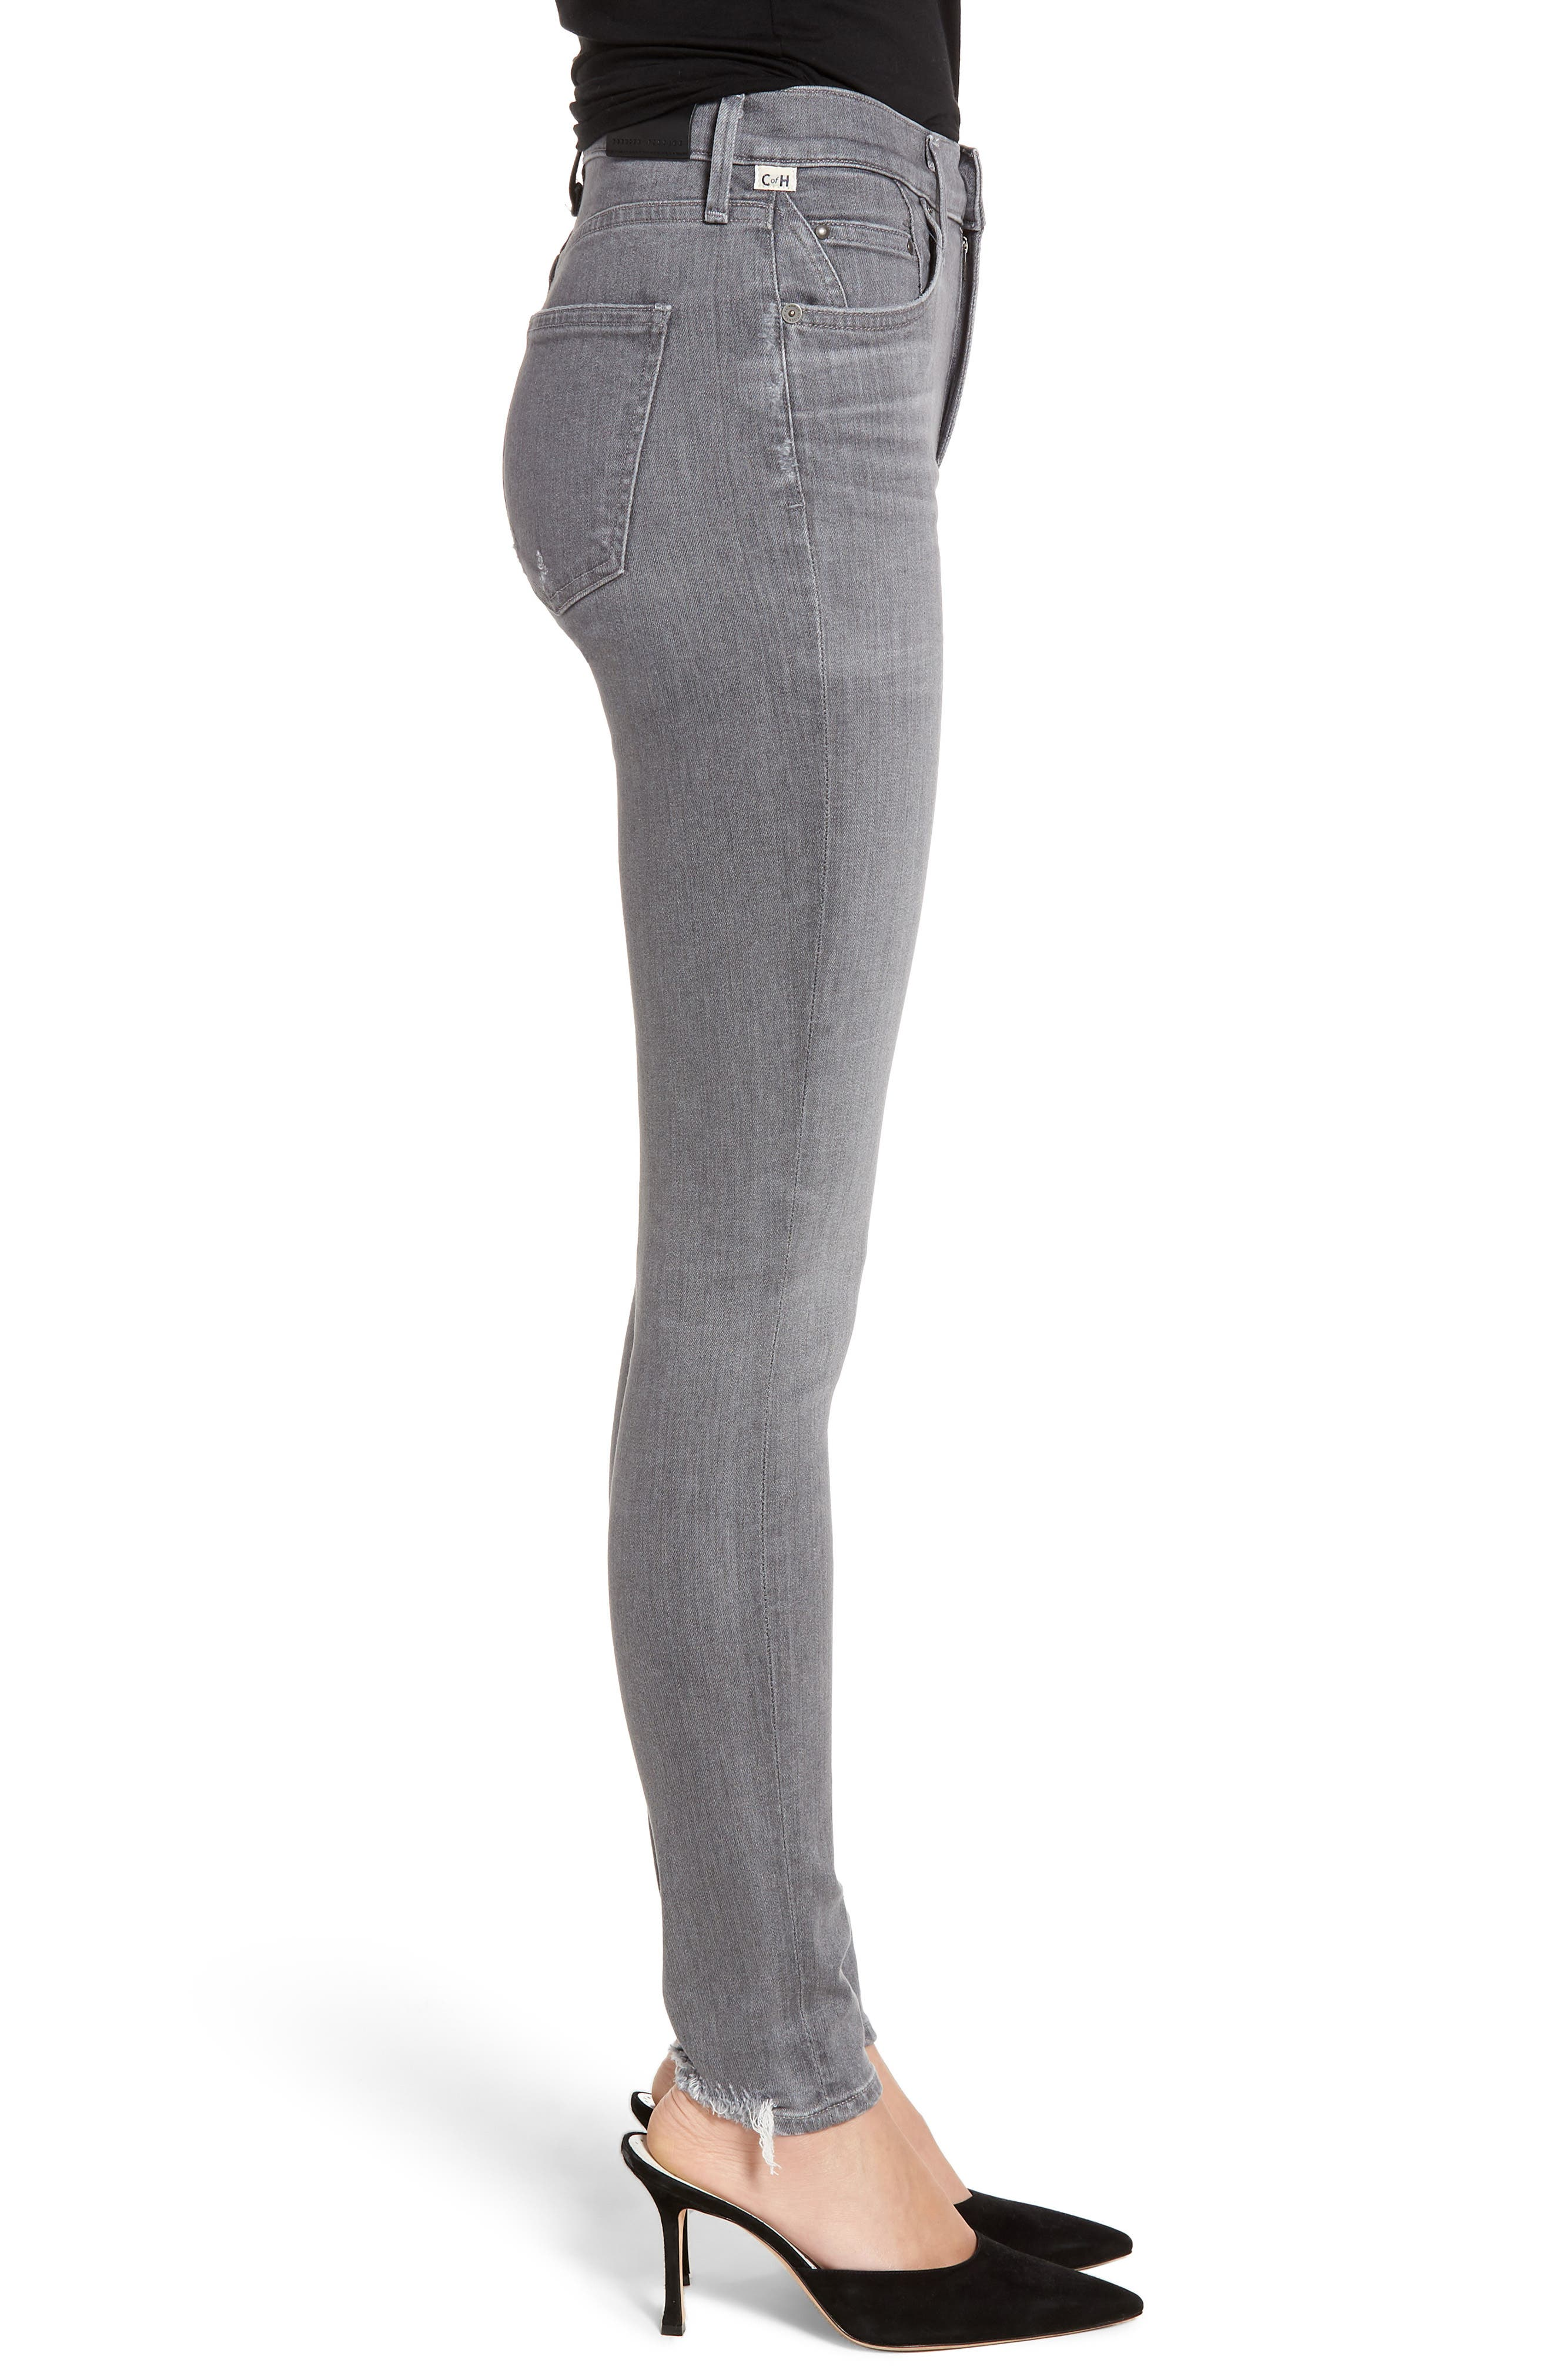 CITIZENS OF HUMANITY,                             Rocket High Waist Skinny Jeans,                             Alternate thumbnail 3, color,                             STATUETTE